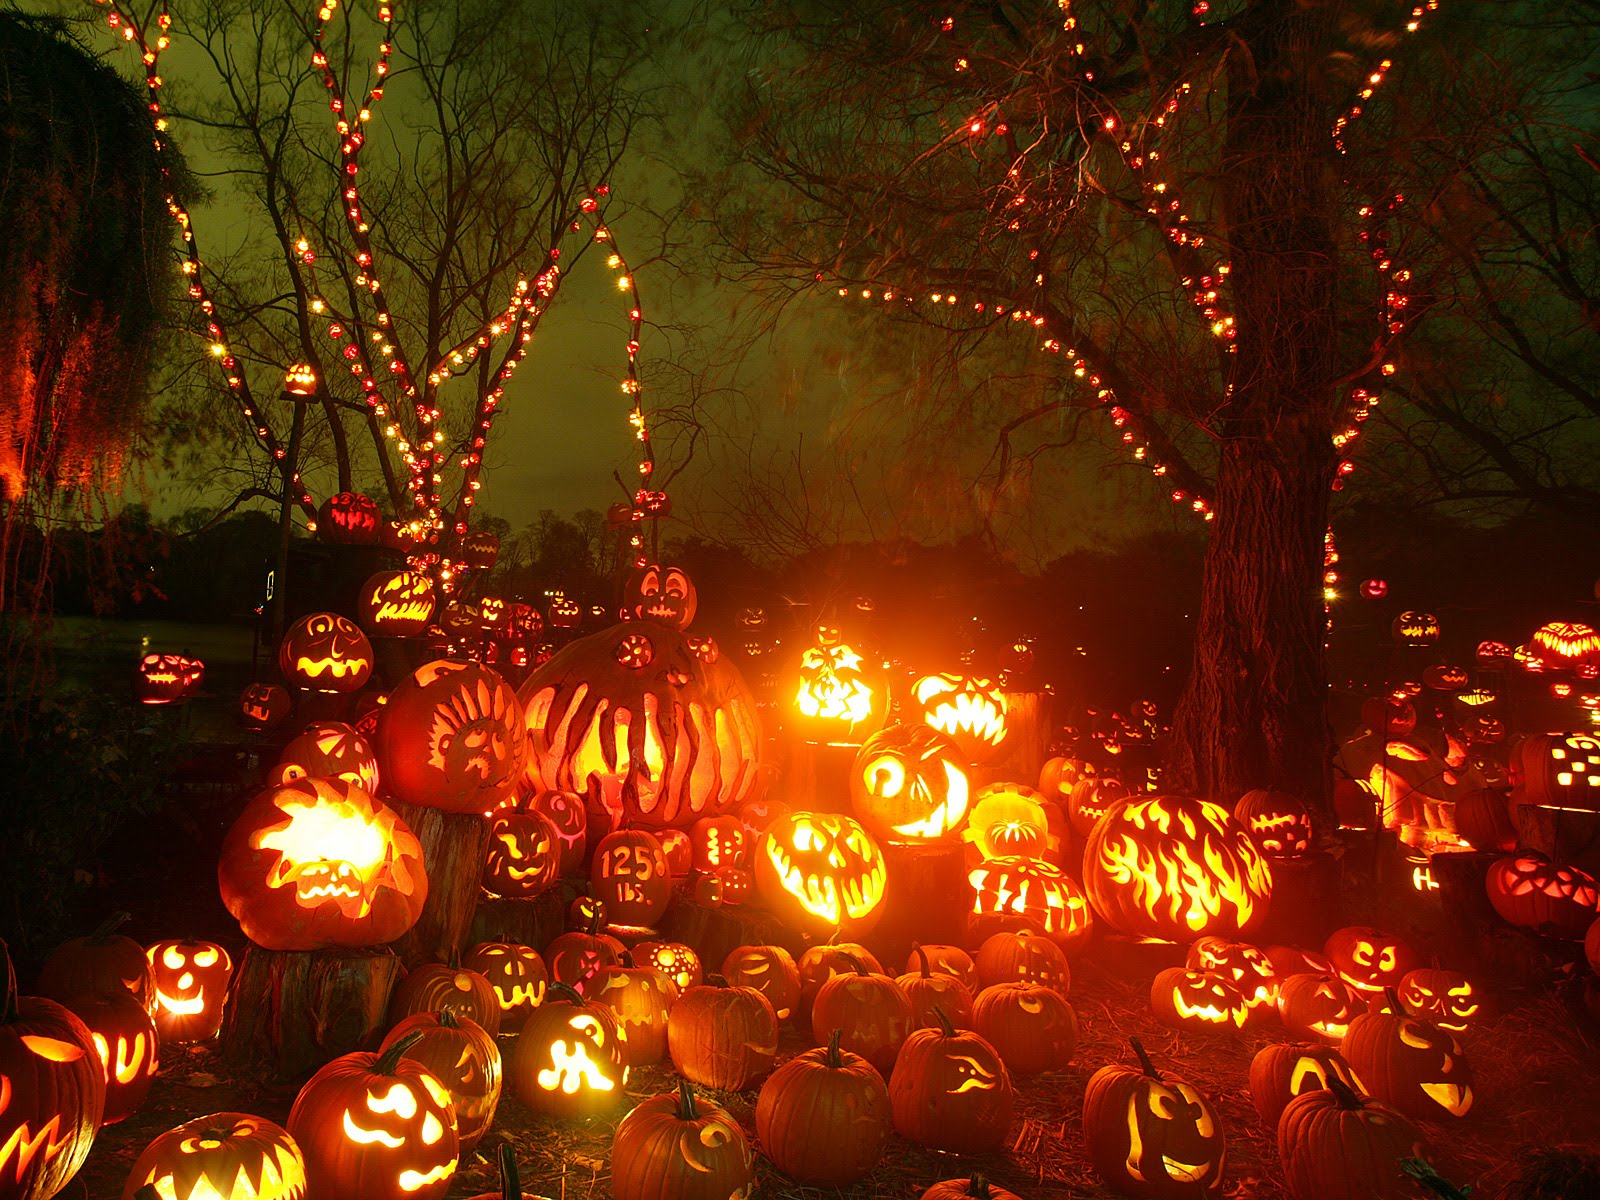 http://2.bp.blogspot.com/-xb30Em3Mpmo/TbF_-5ETtrI/AAAAAAAAACo/YgHsdORCU4A/s1600/Facebook-Wallpapers-for-Halloween.jpg